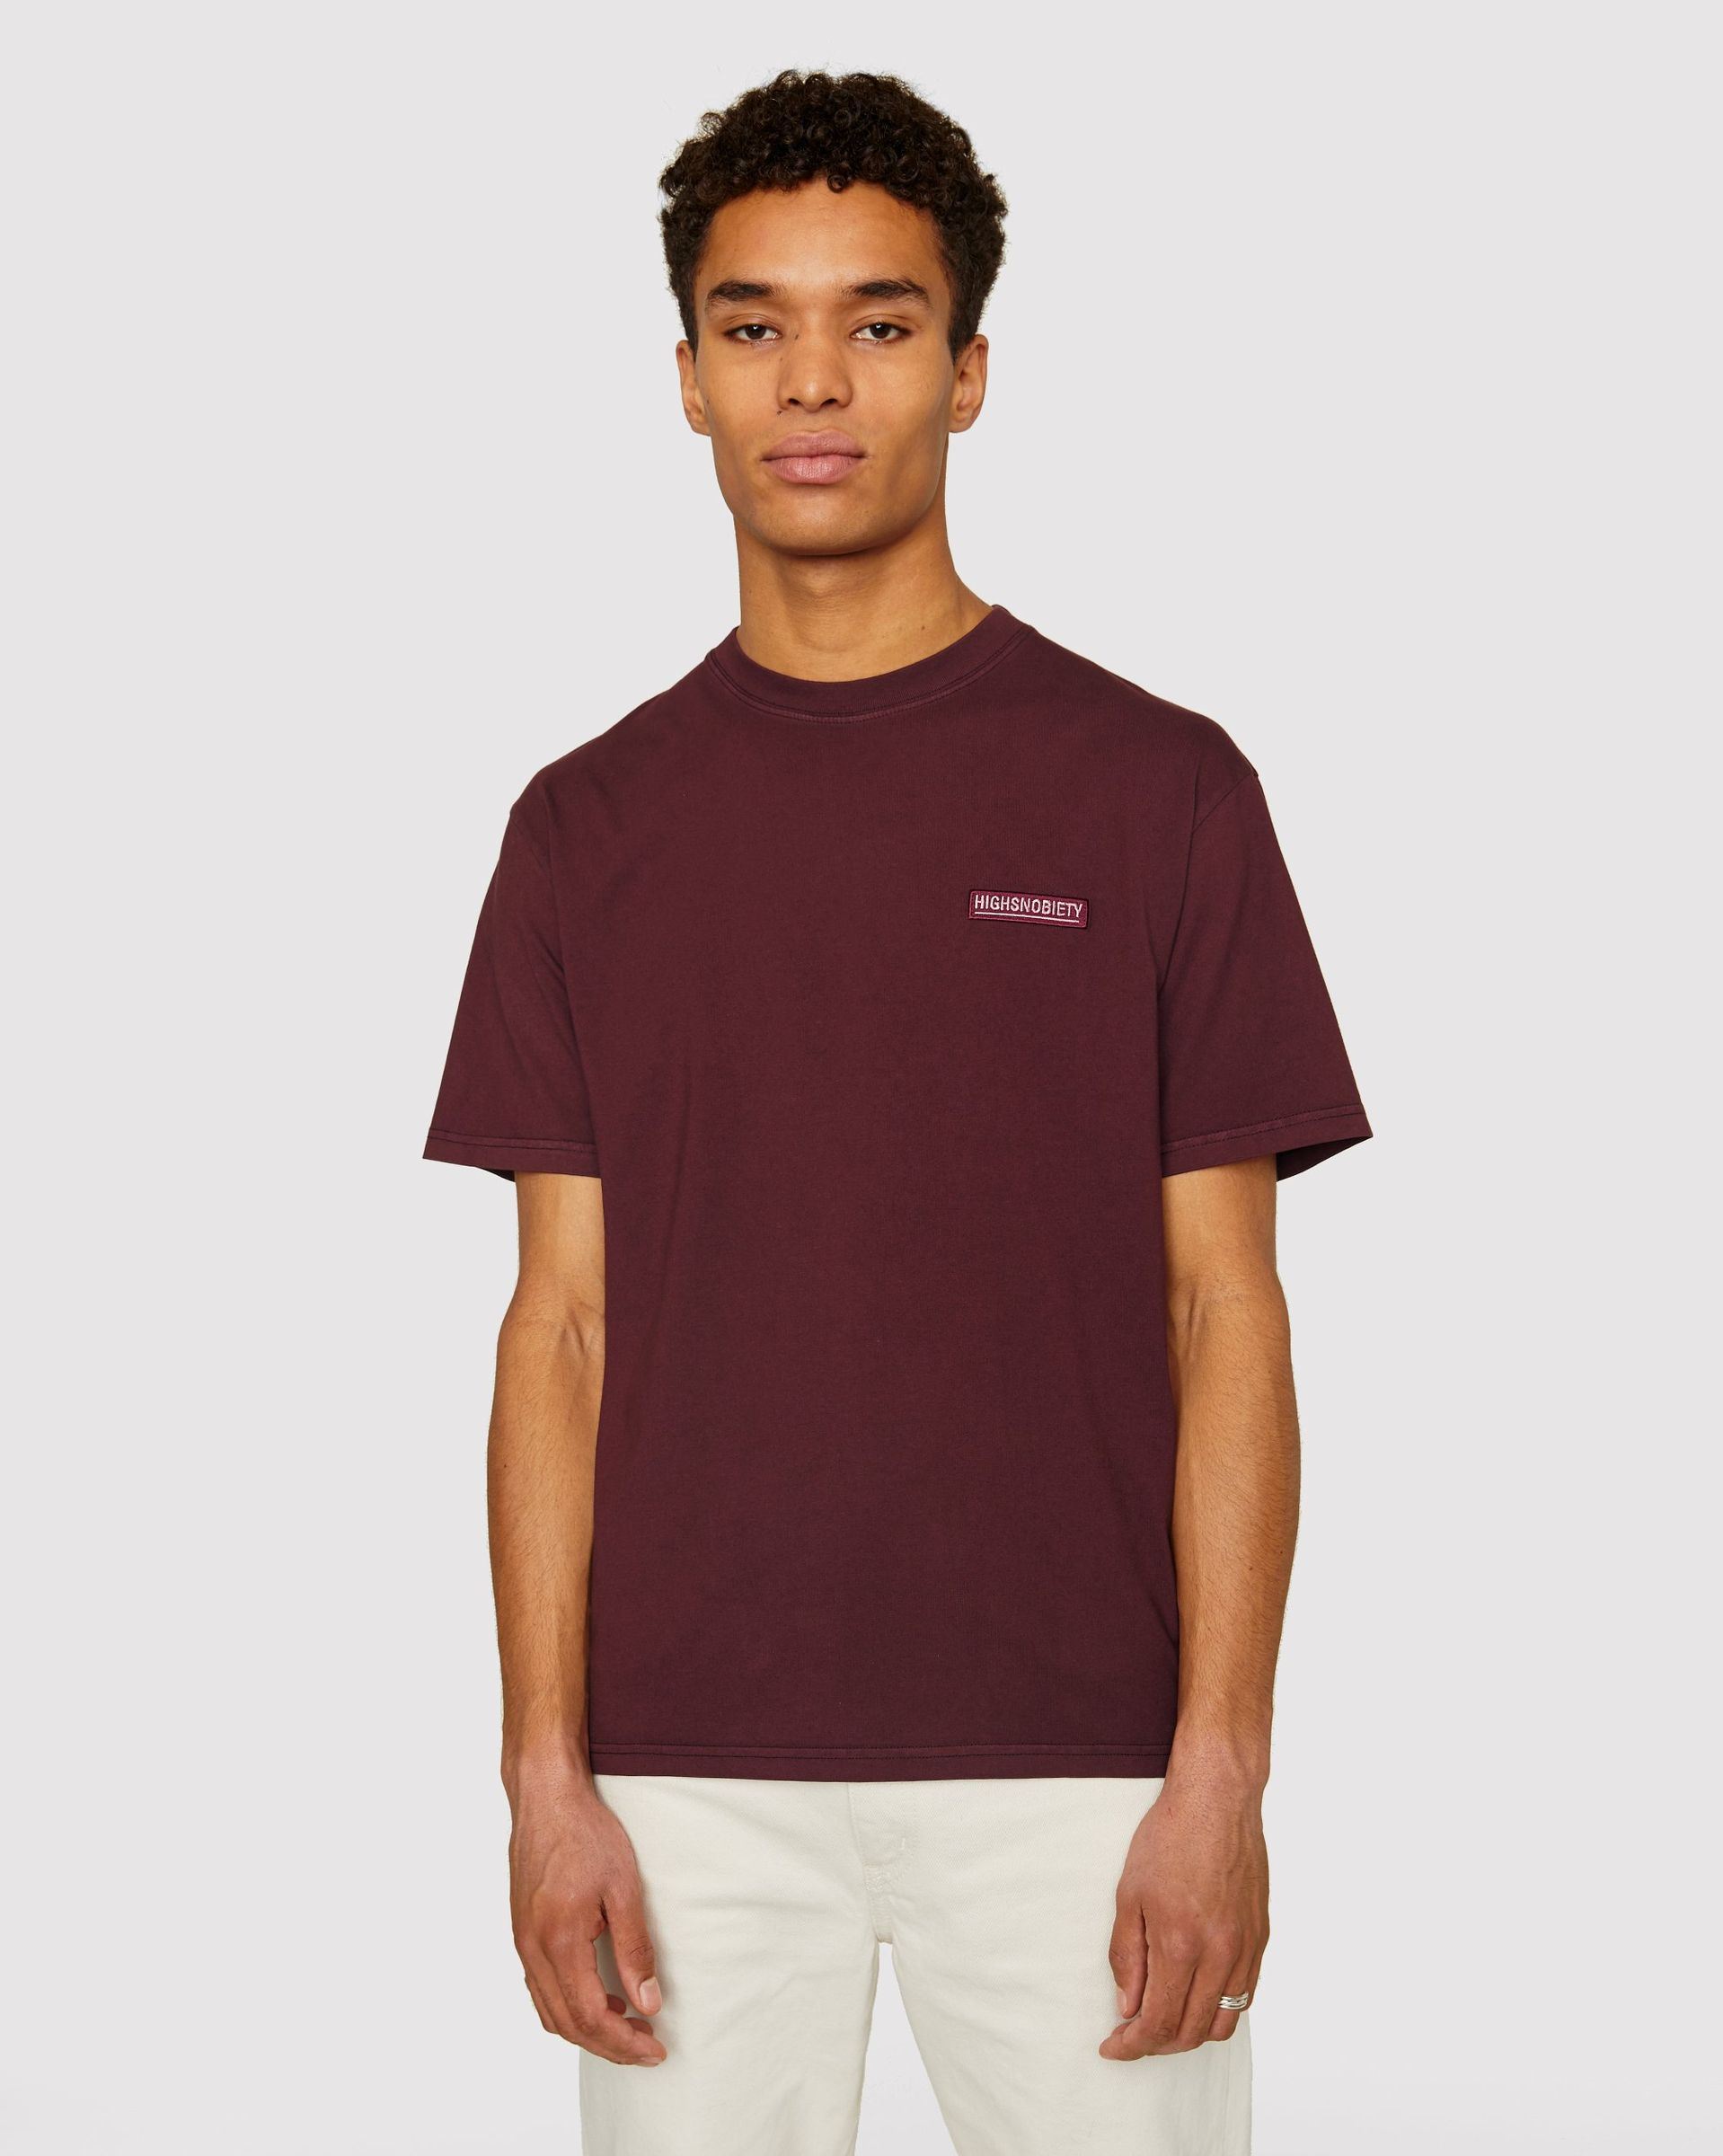 Highsnobiety Staples - T-Shirt Burgundy - Image 2